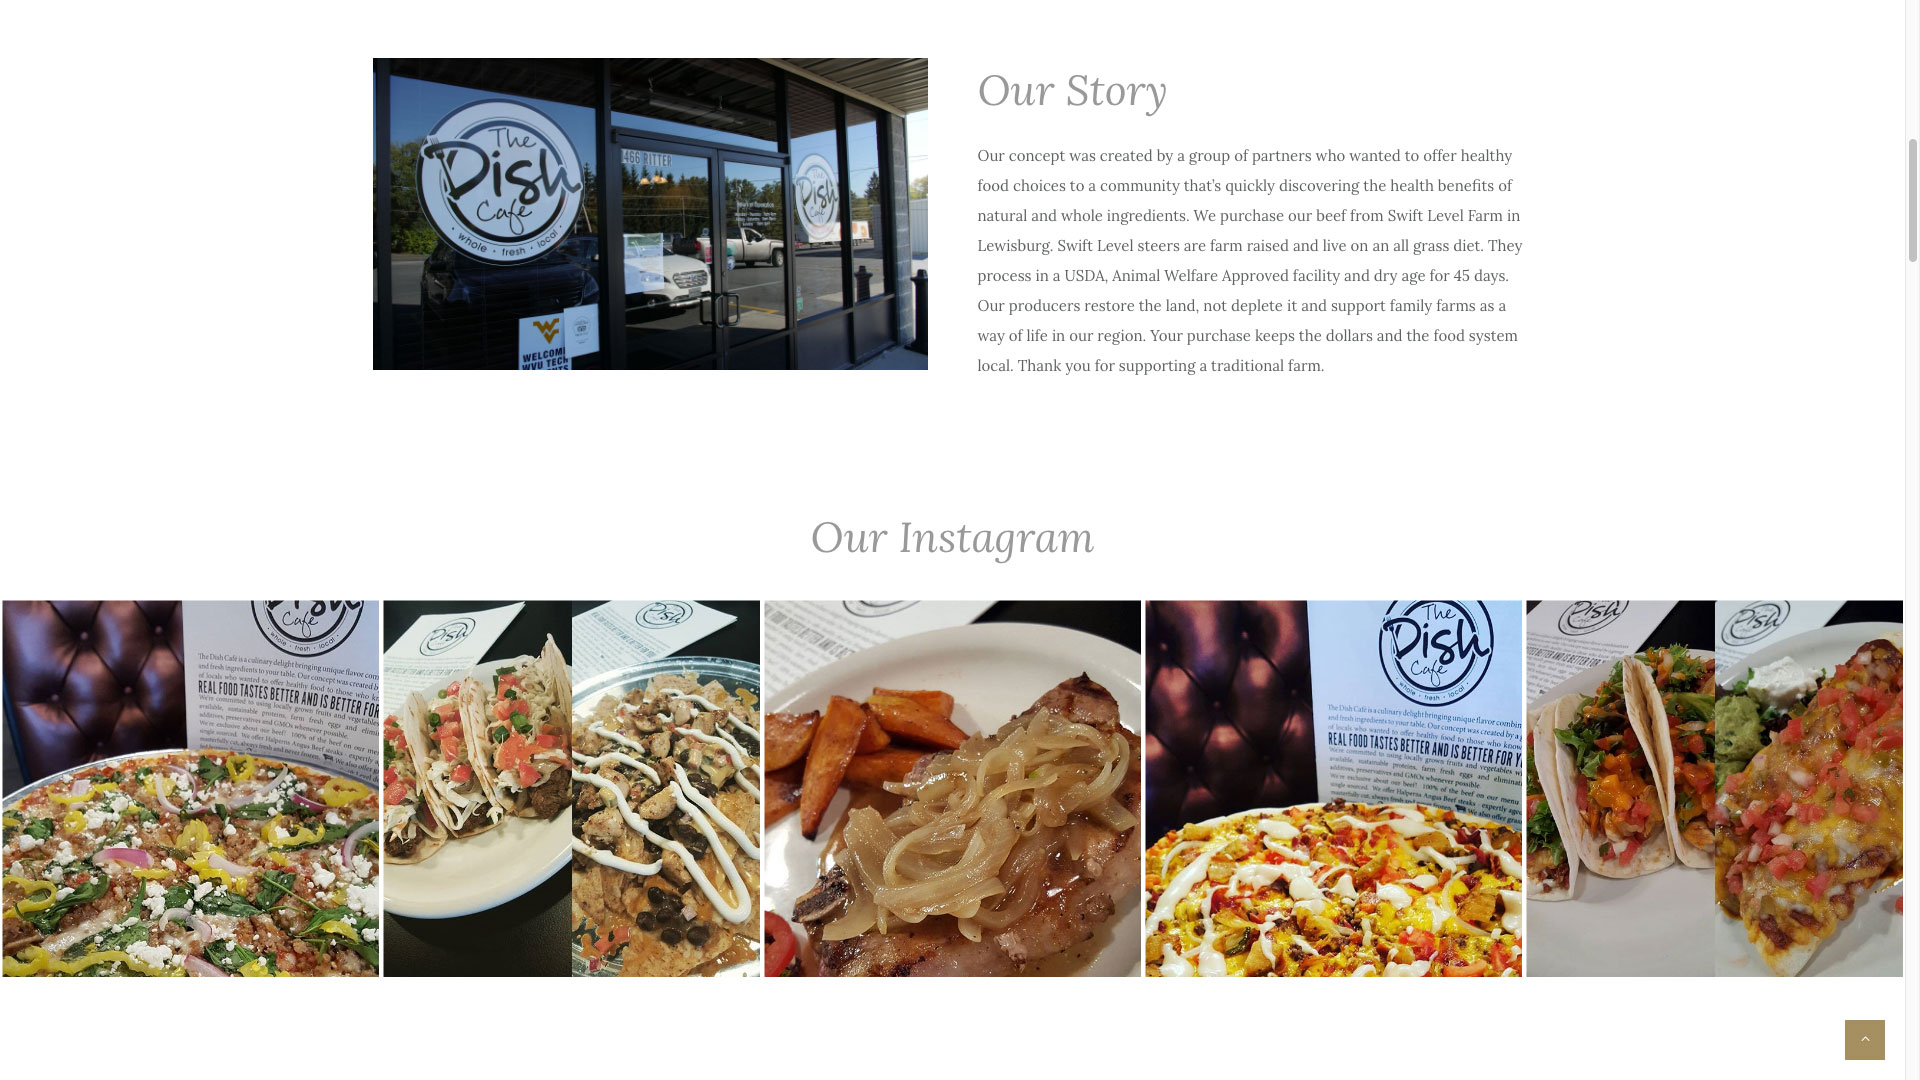 dish-cafe-our-story-web-design